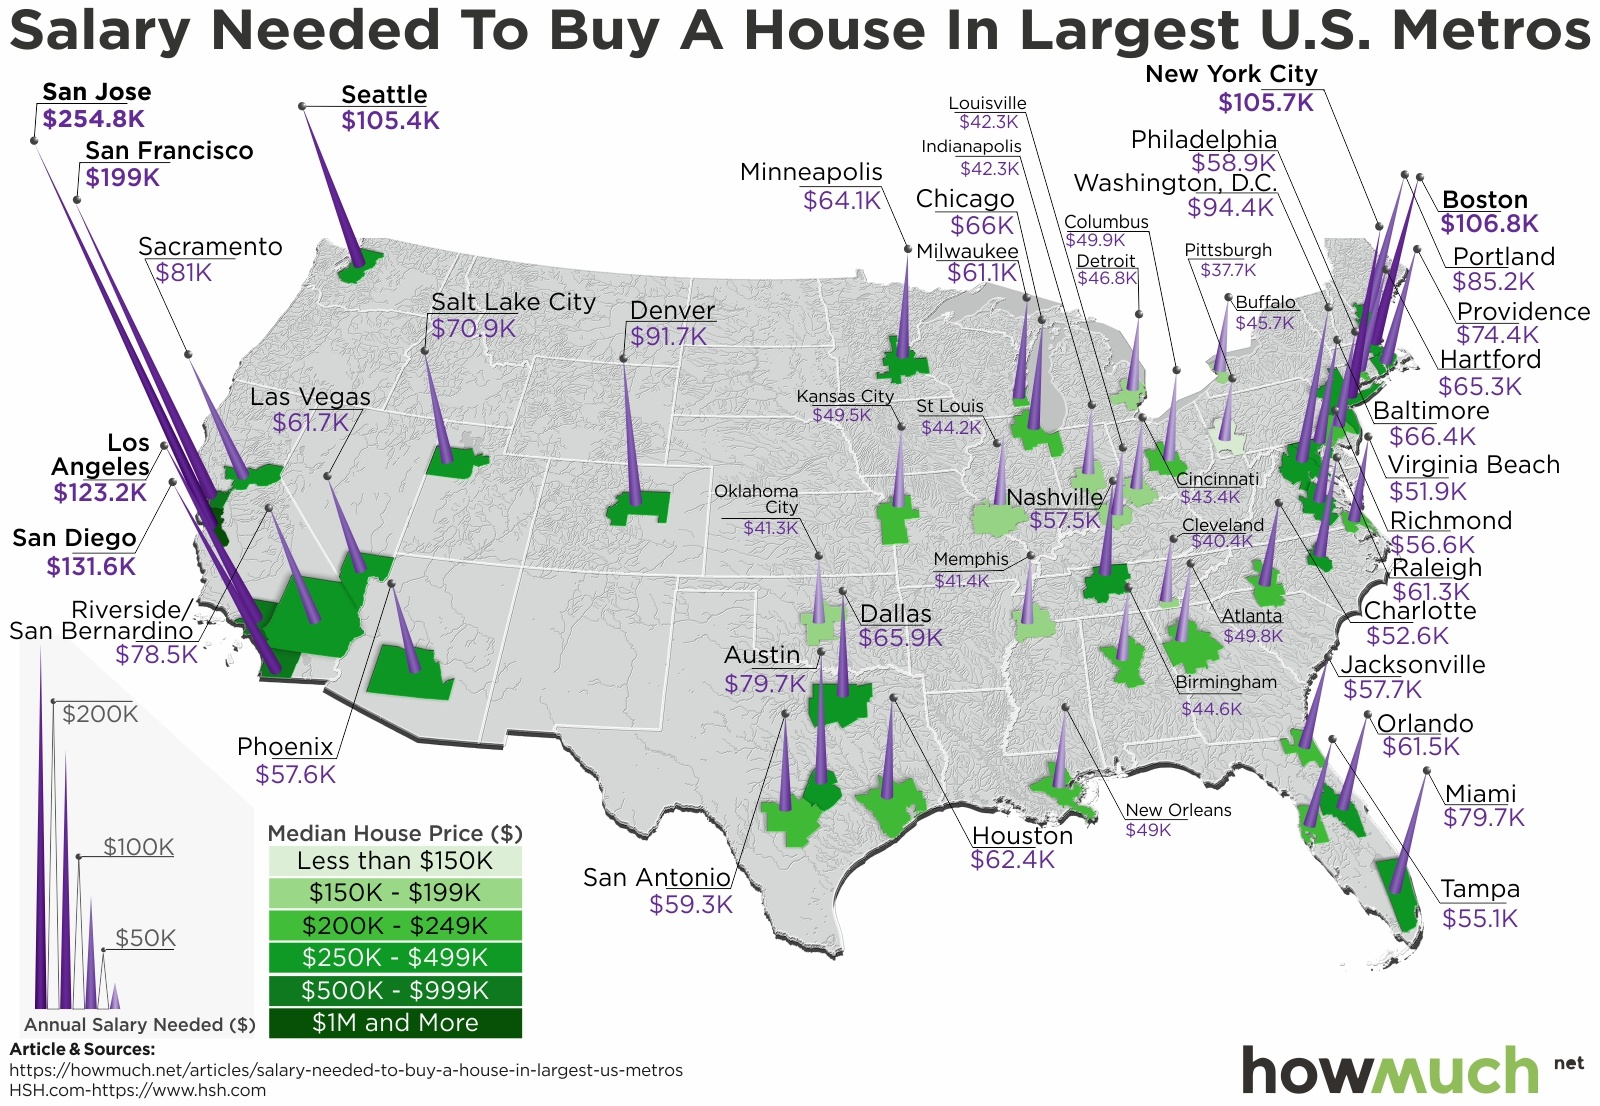 The Salary You'd Have To Earn To Buy A House In The Largest US Metros, Visualized